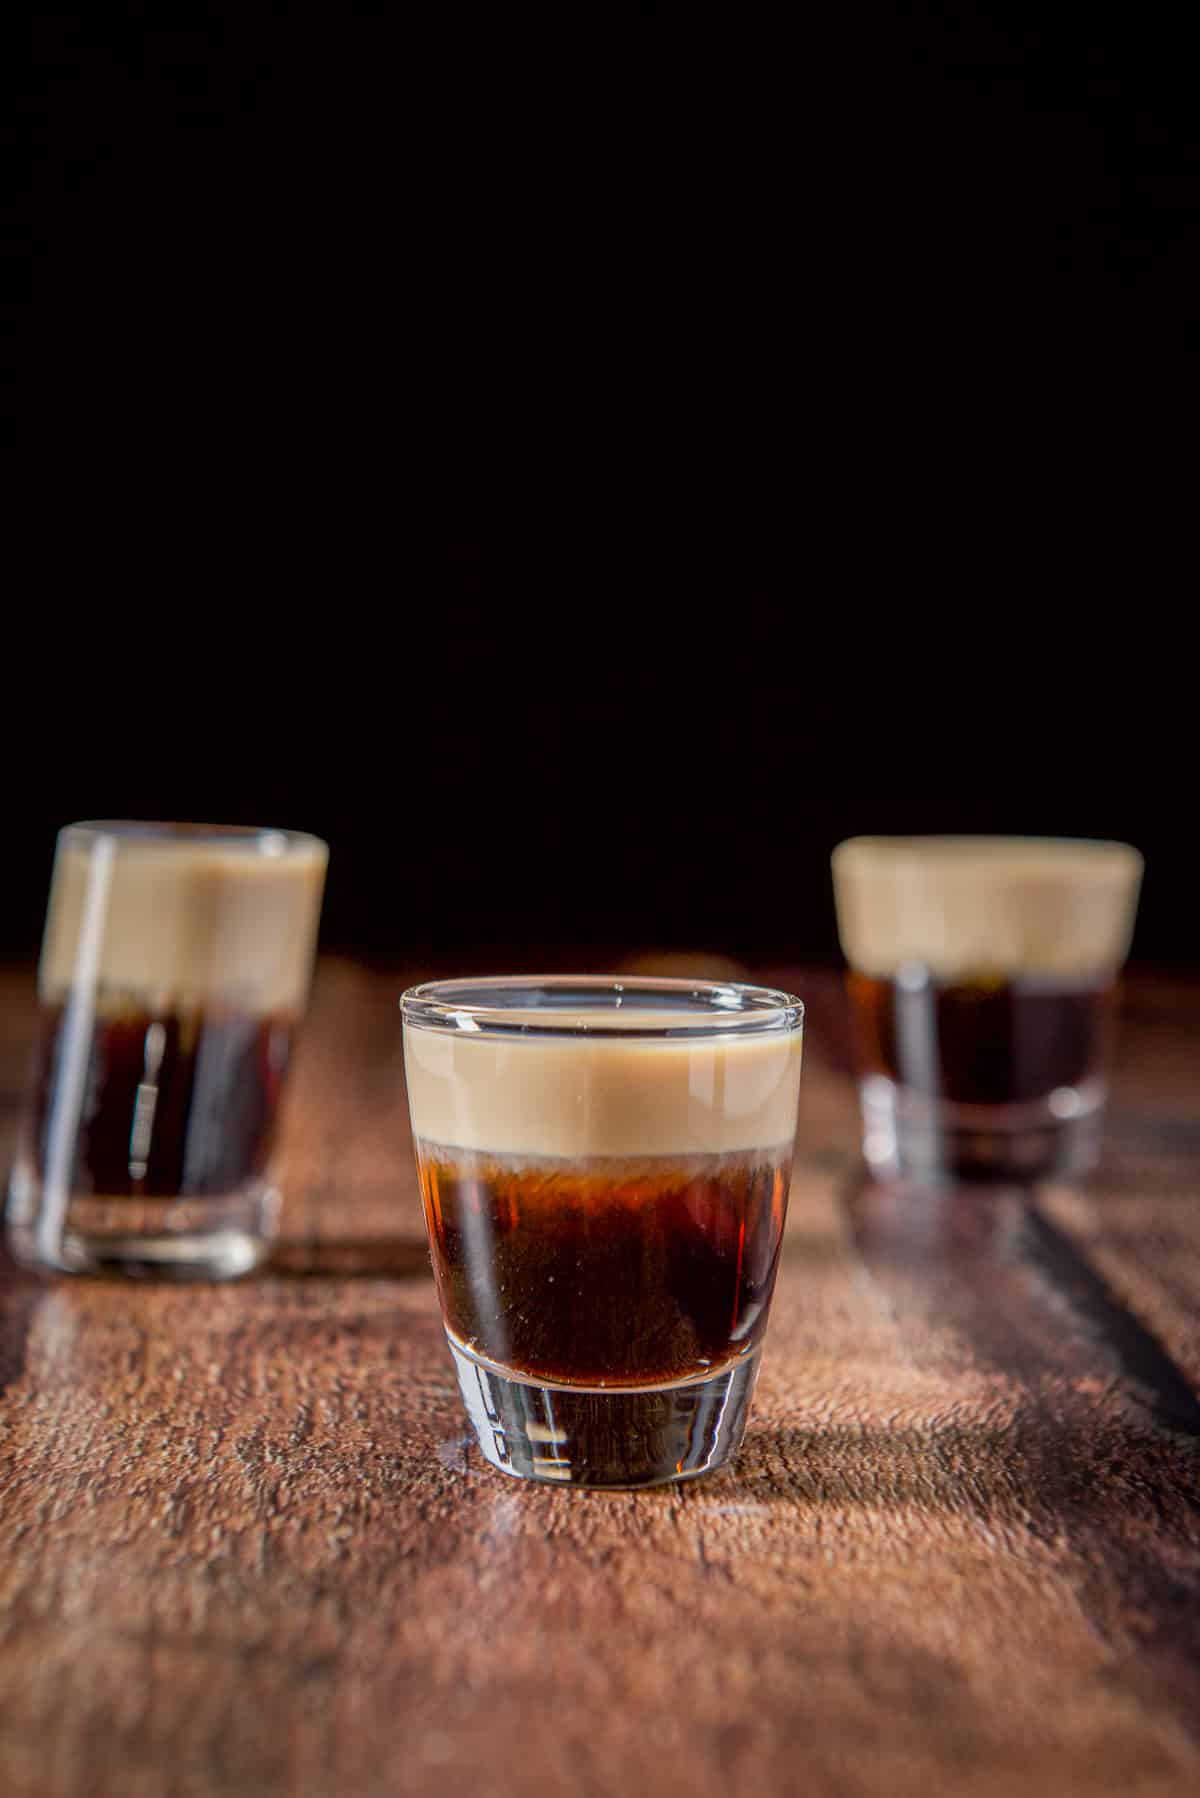 The short glass filled with the layered shot on the wooden table. There are two other glasses behind it